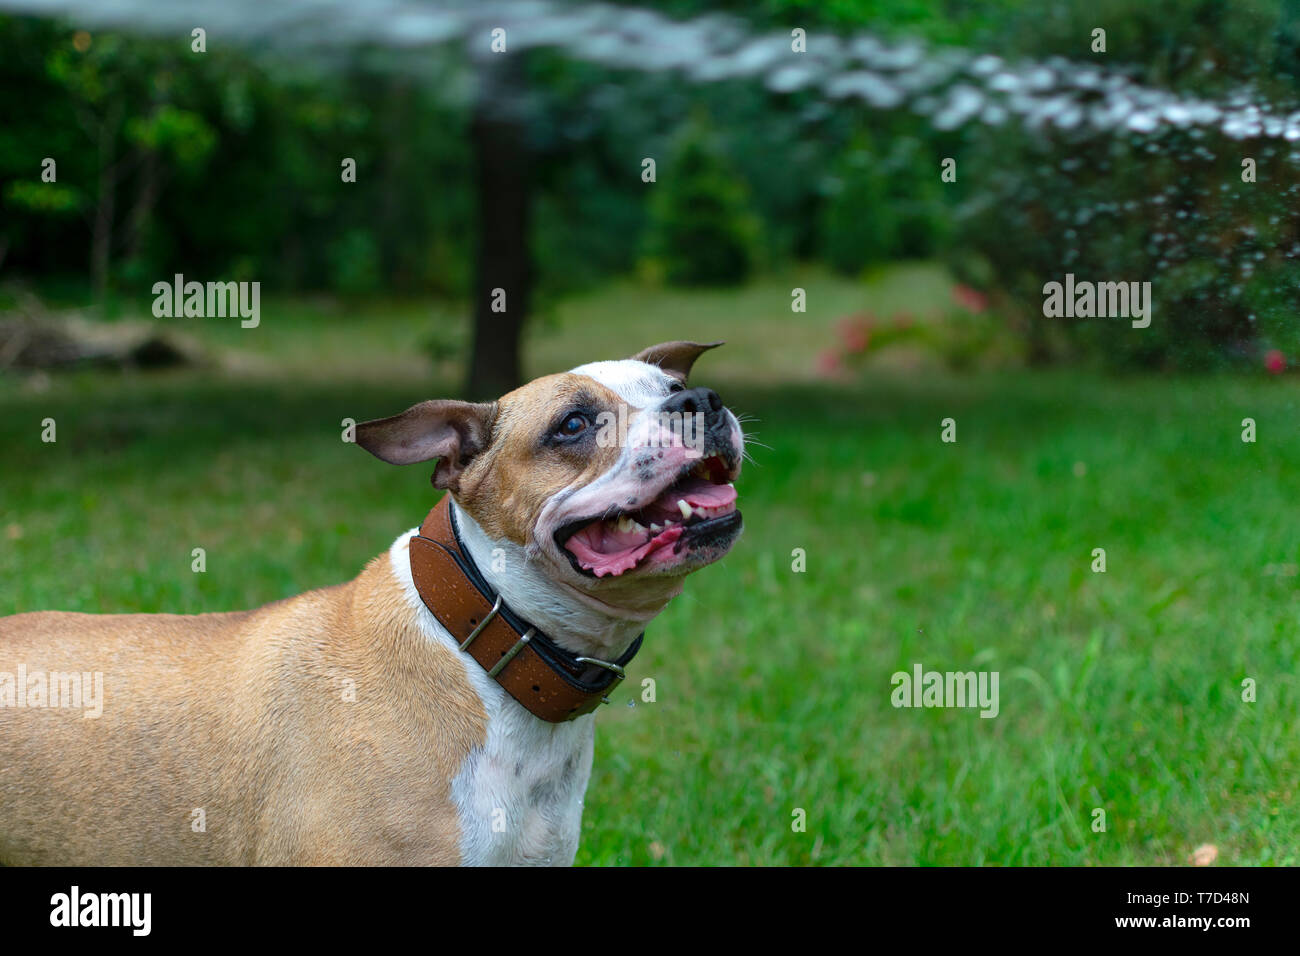 Amstaff is playing with water from a garden hose. Dog mops and merry jumps on the green spring lawn. - Stock Image